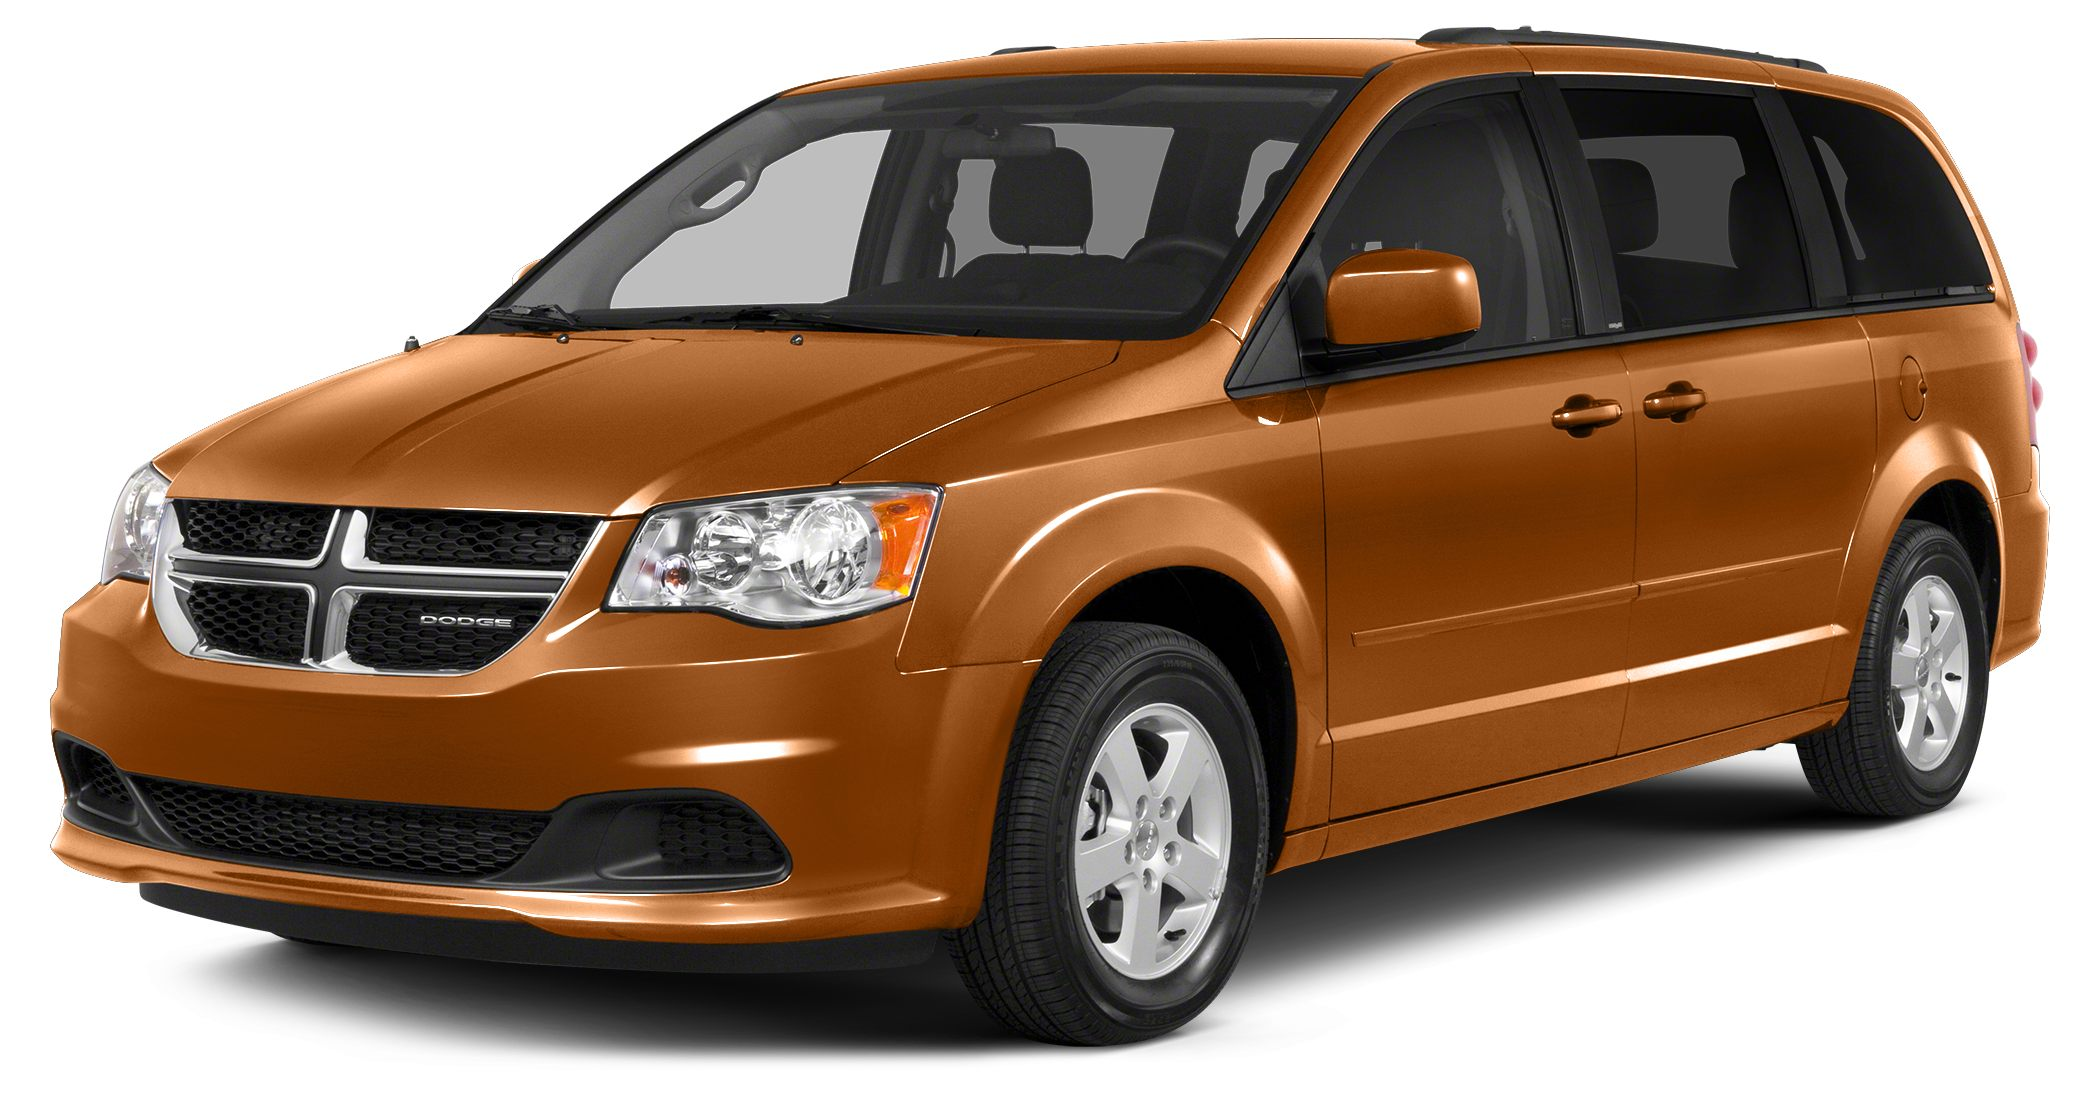 2012 Dodge Grand Caravan SXT WE OFFER FREE LIFETIME INSPECTION Miles 63164Color Black Stock P